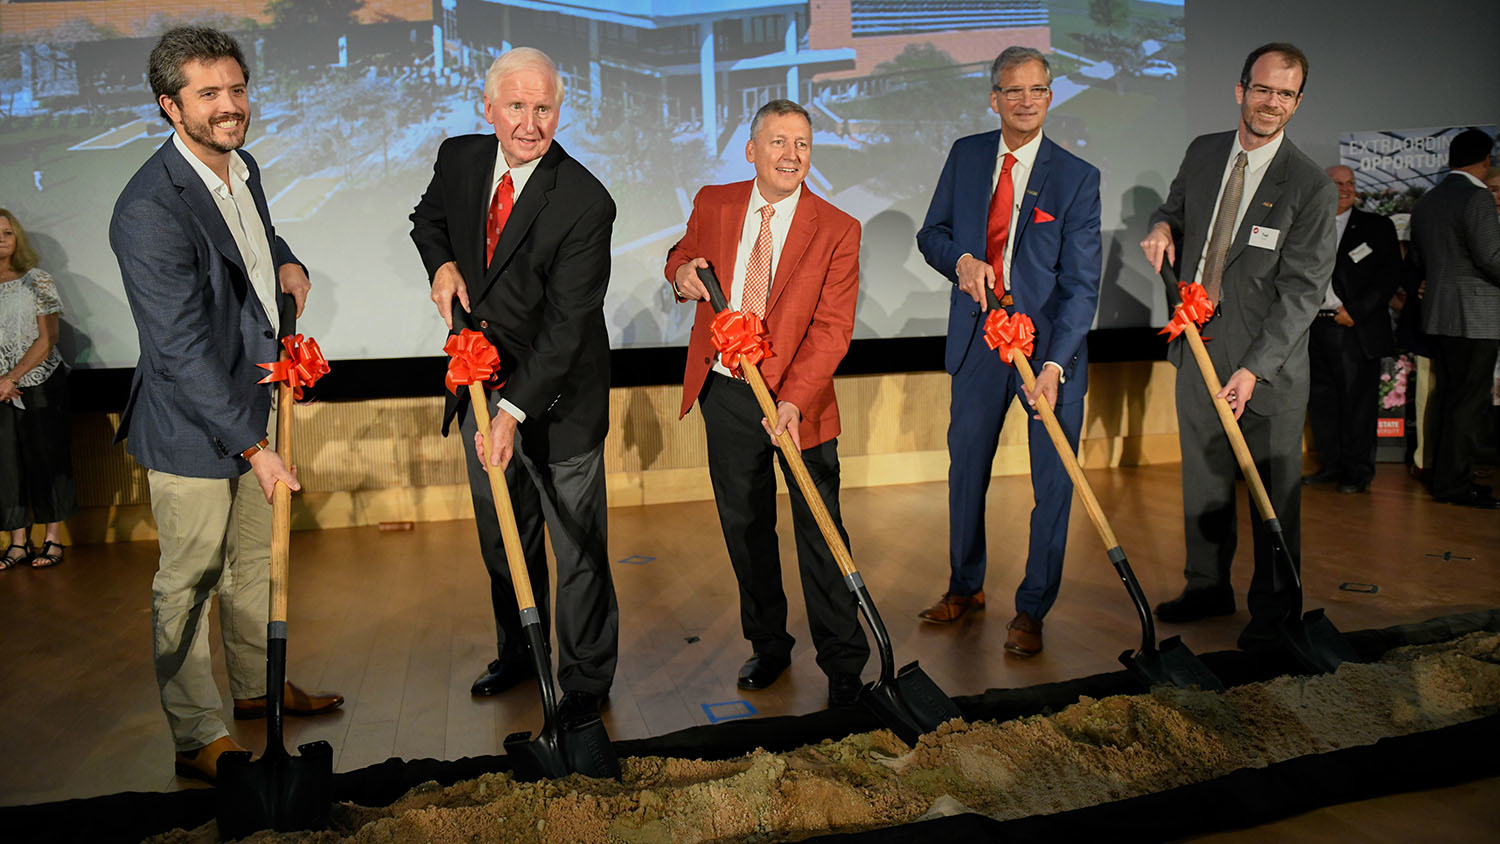 Owen Wagner (far left) and other foundational supporters for the Plant Sciences Initiative during the Plant Sciences Building groundbreaking on September 6, 2019.